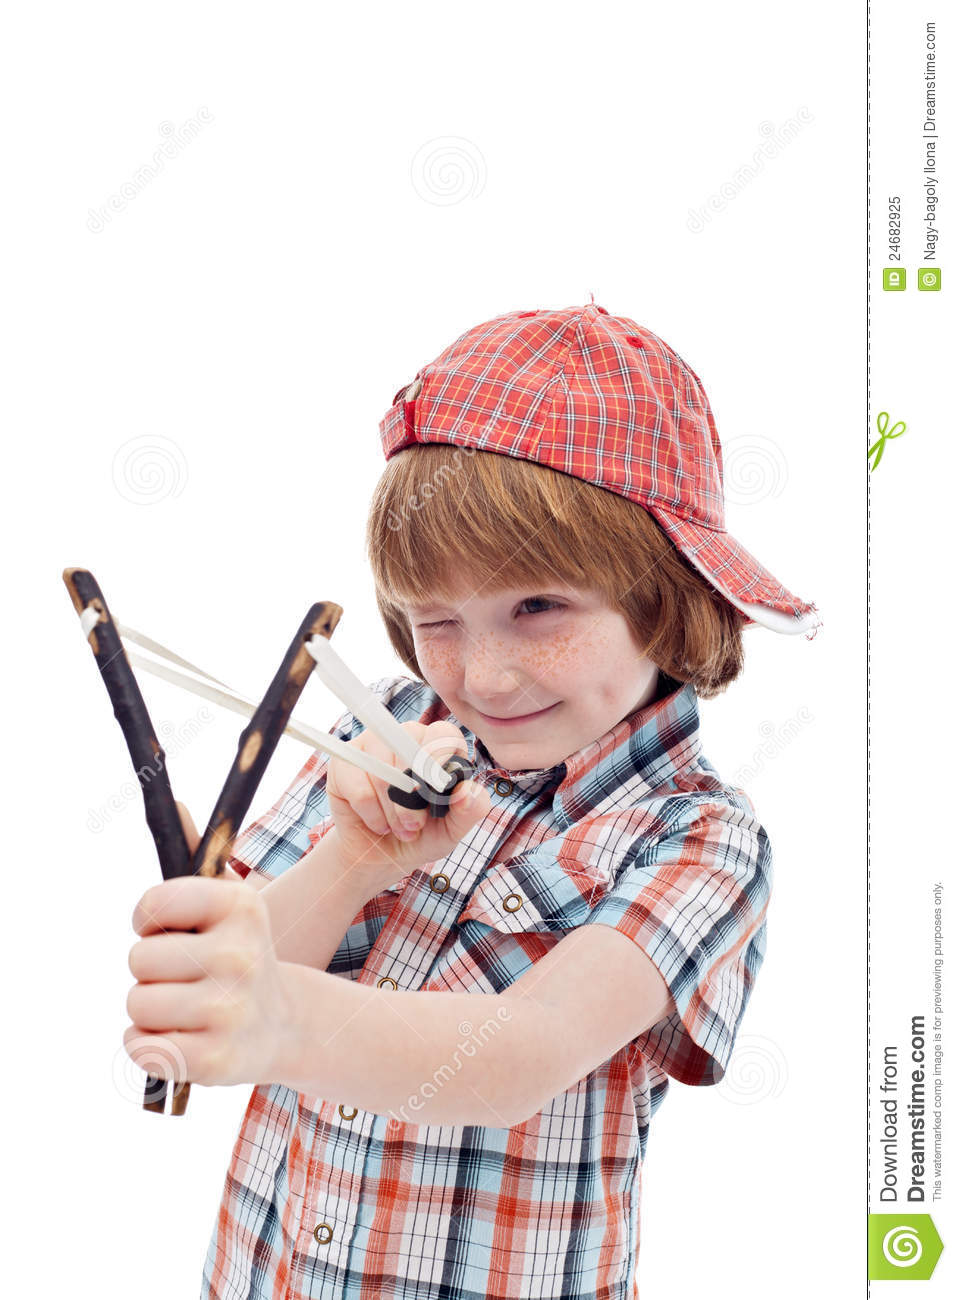 Http Www Dreamstime Com Royalty Free Stock Photo Mischievous Kid Aiming Sling Image24682925